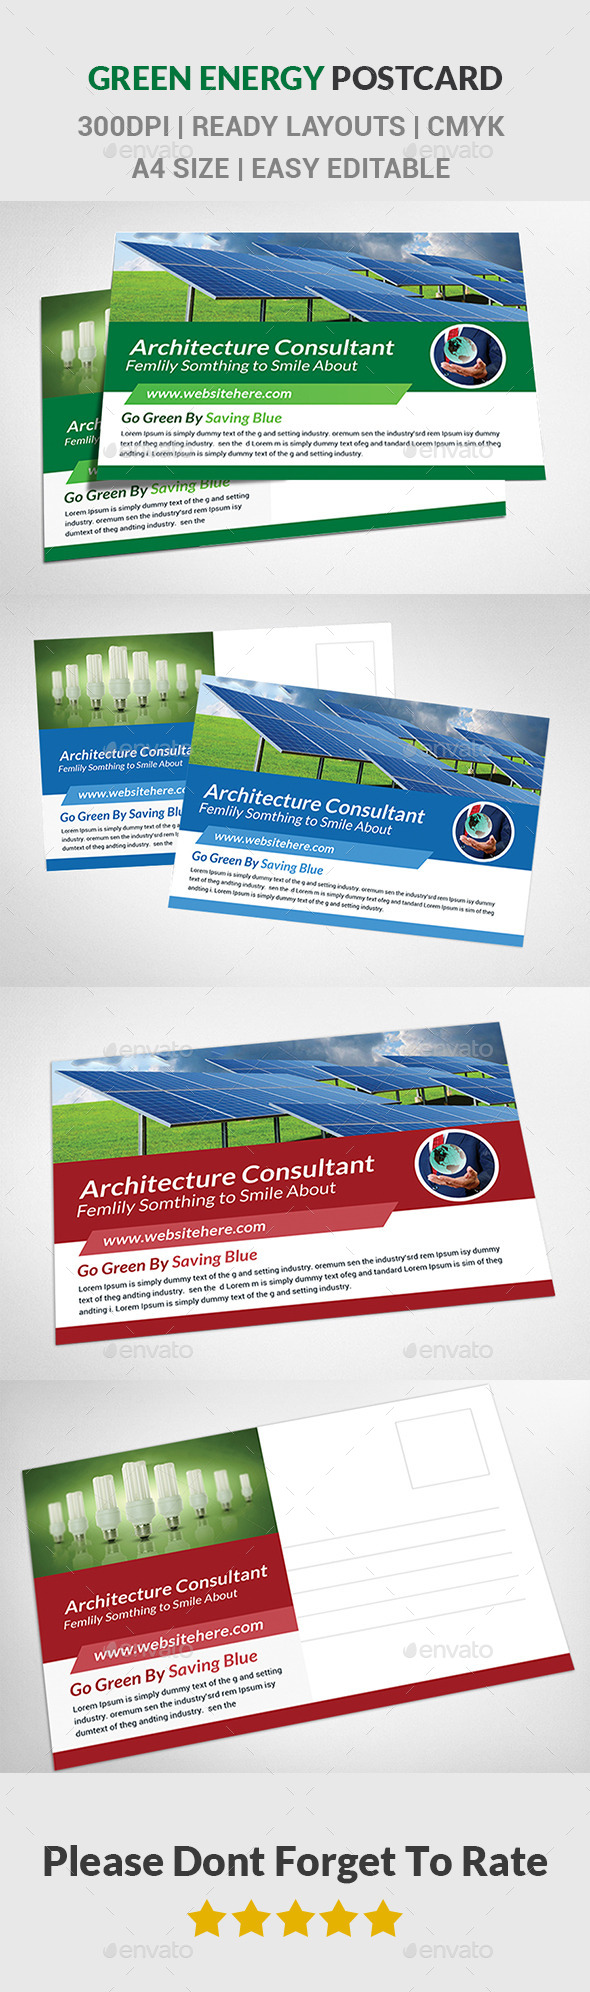 Green Energy Postcard - Cards & Invites Print Templates